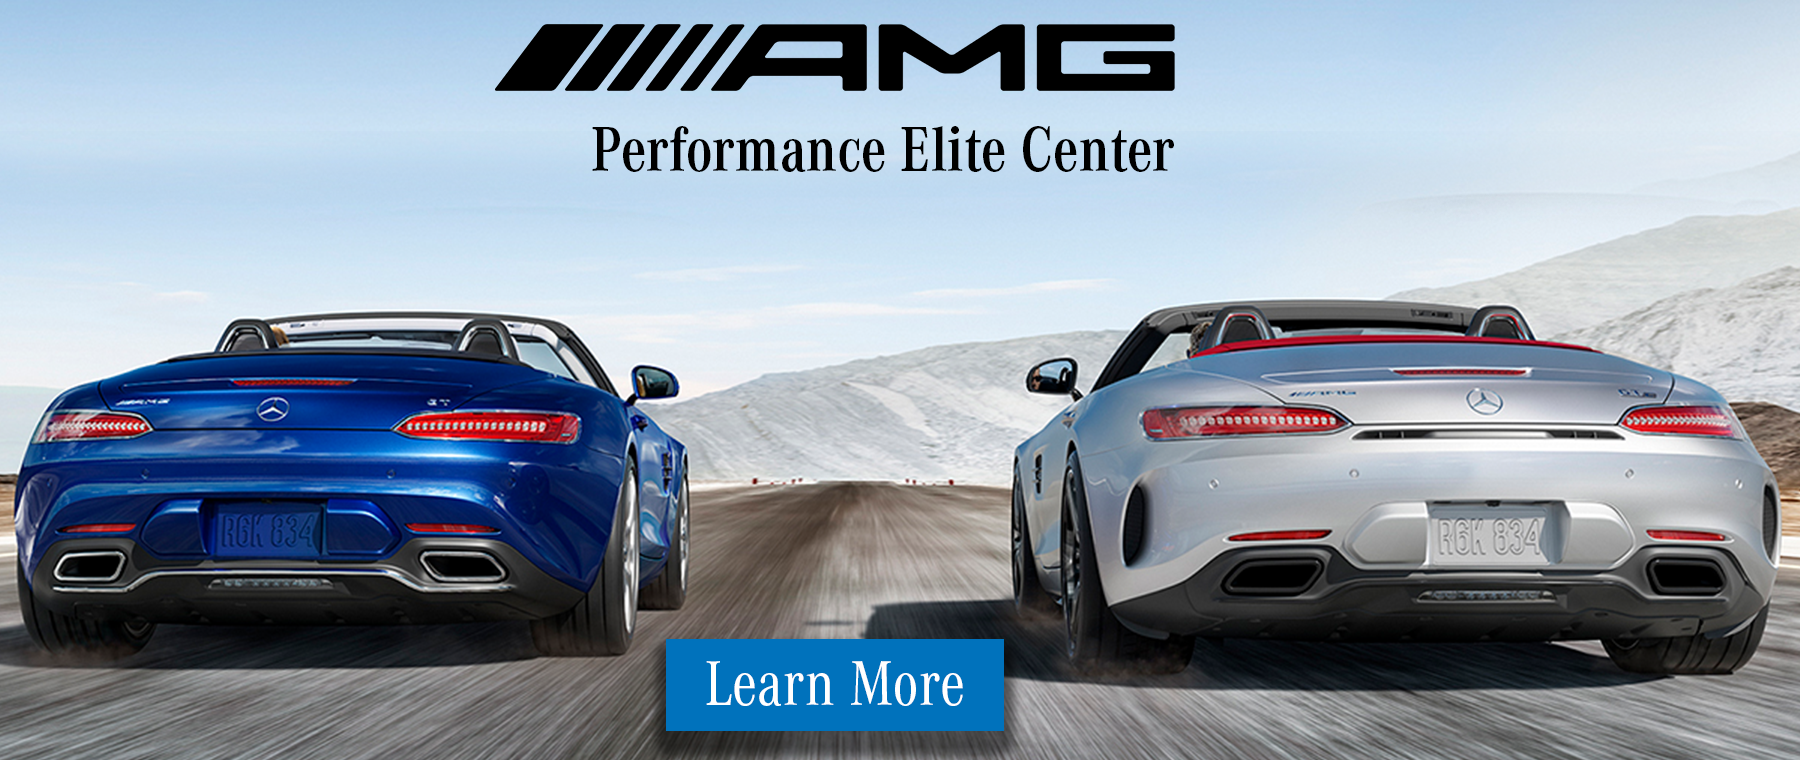 AMG Performance Elite Center